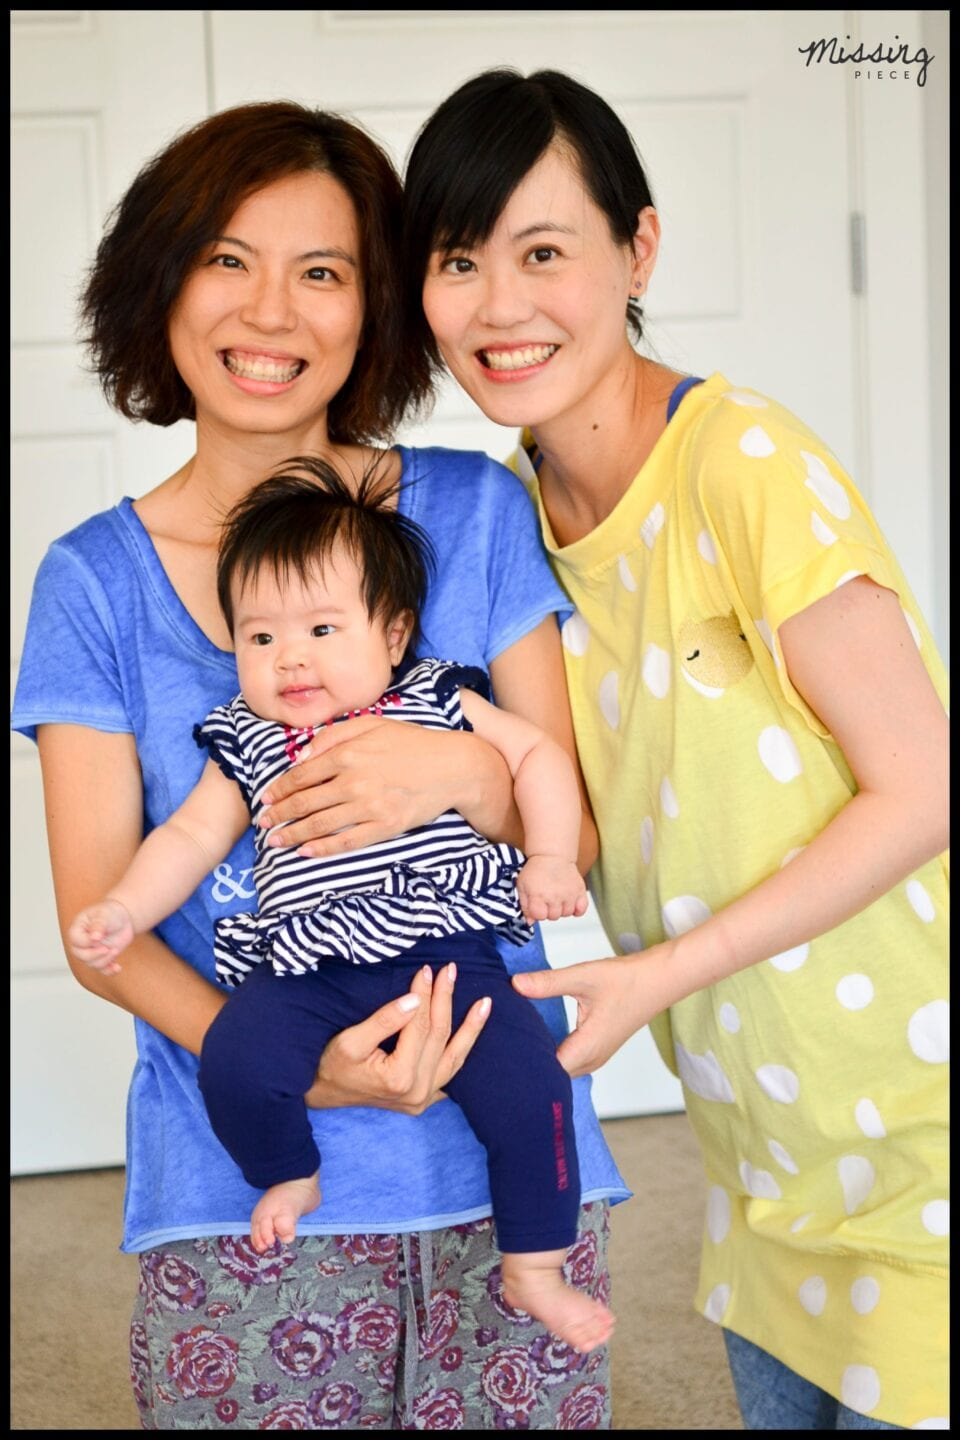 Two sisters carries the baby in a family portrait